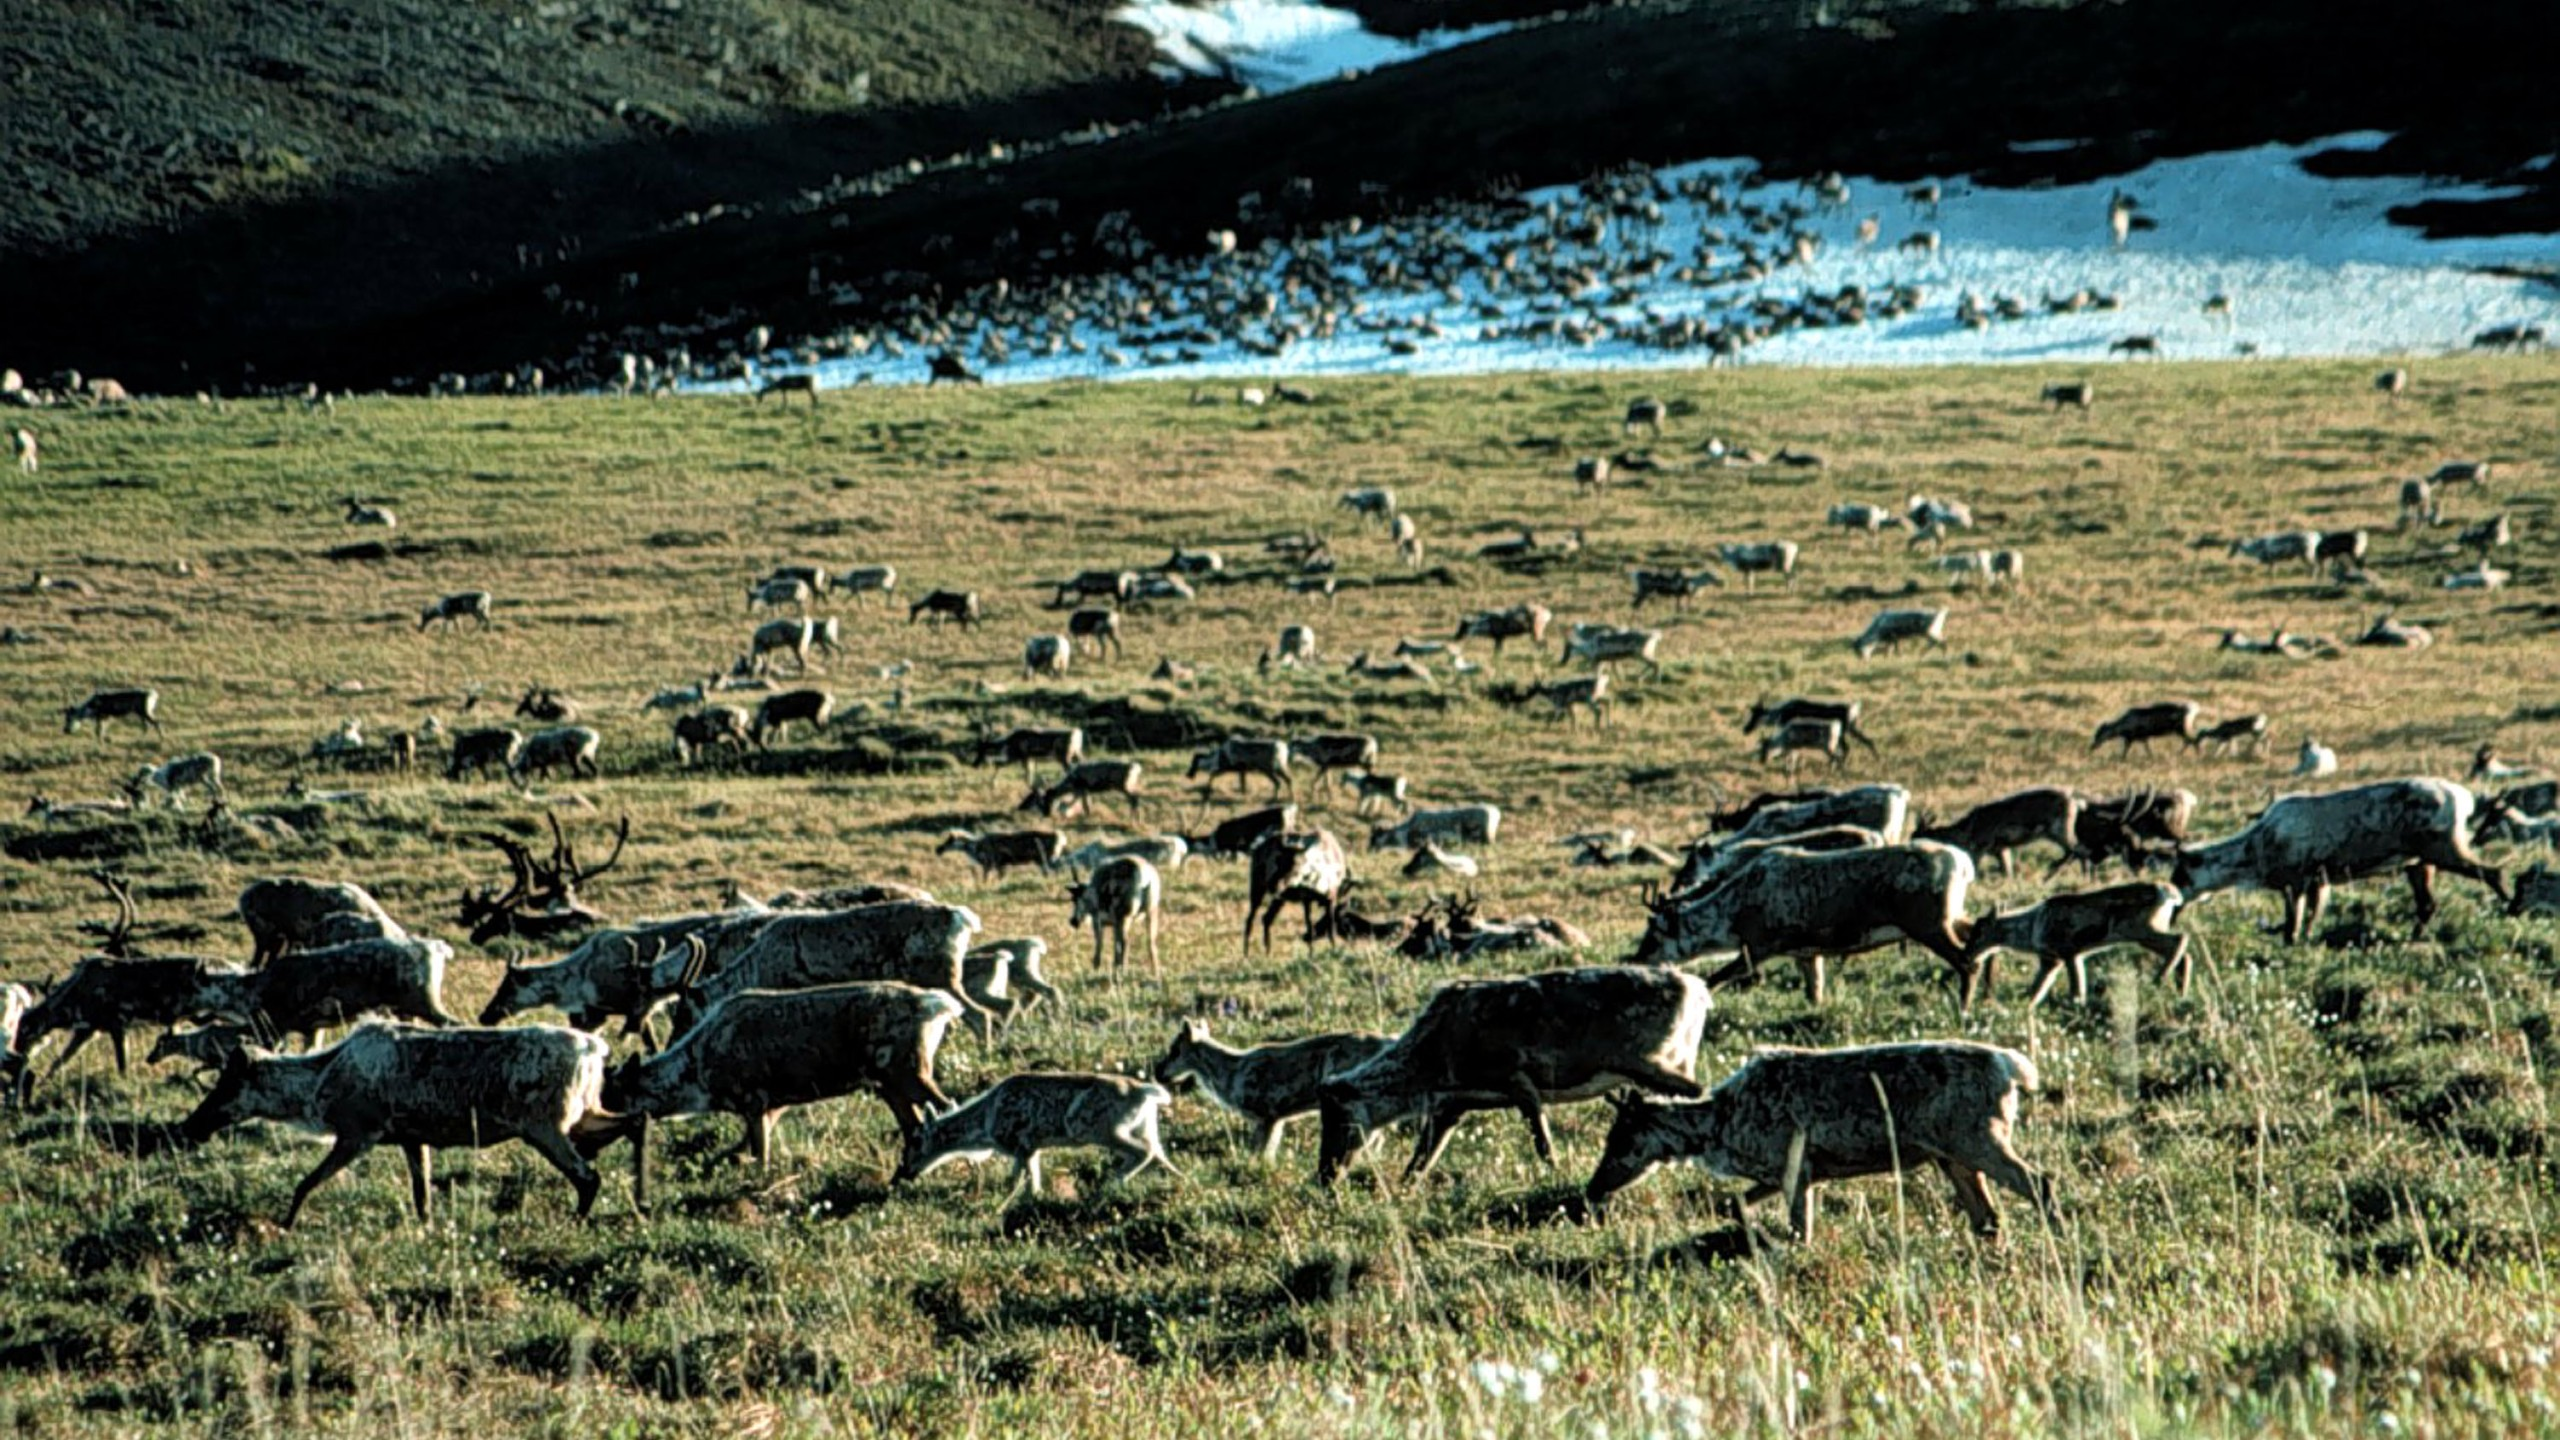 Caribou graze in the Arctic National Wildlife Refuge in Alaska in this undated file photo. (Credit: U.S. Fish and Wildlife Service/Getty Images)